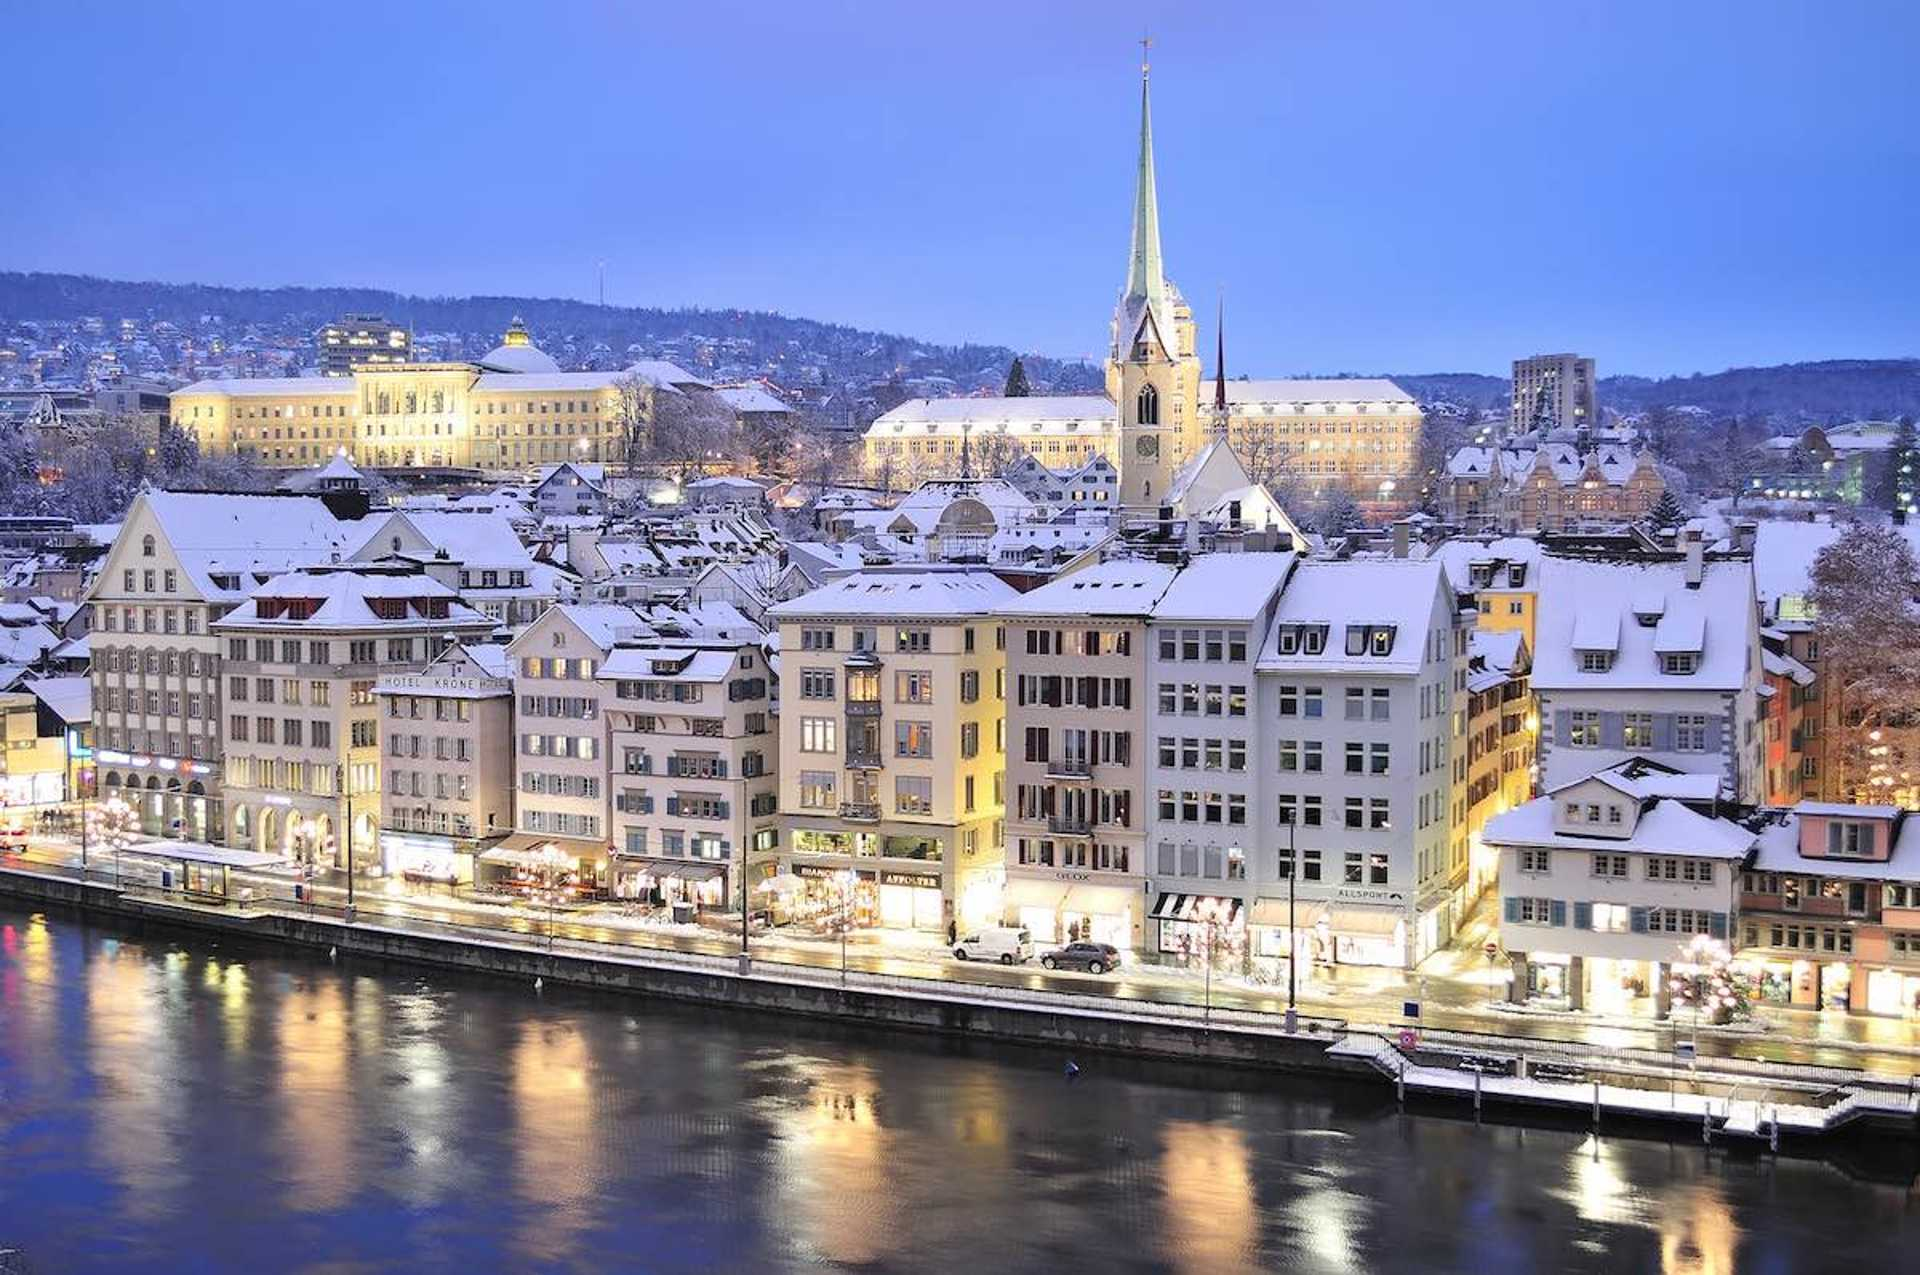 Doesn't Zurich look magical in the winter?